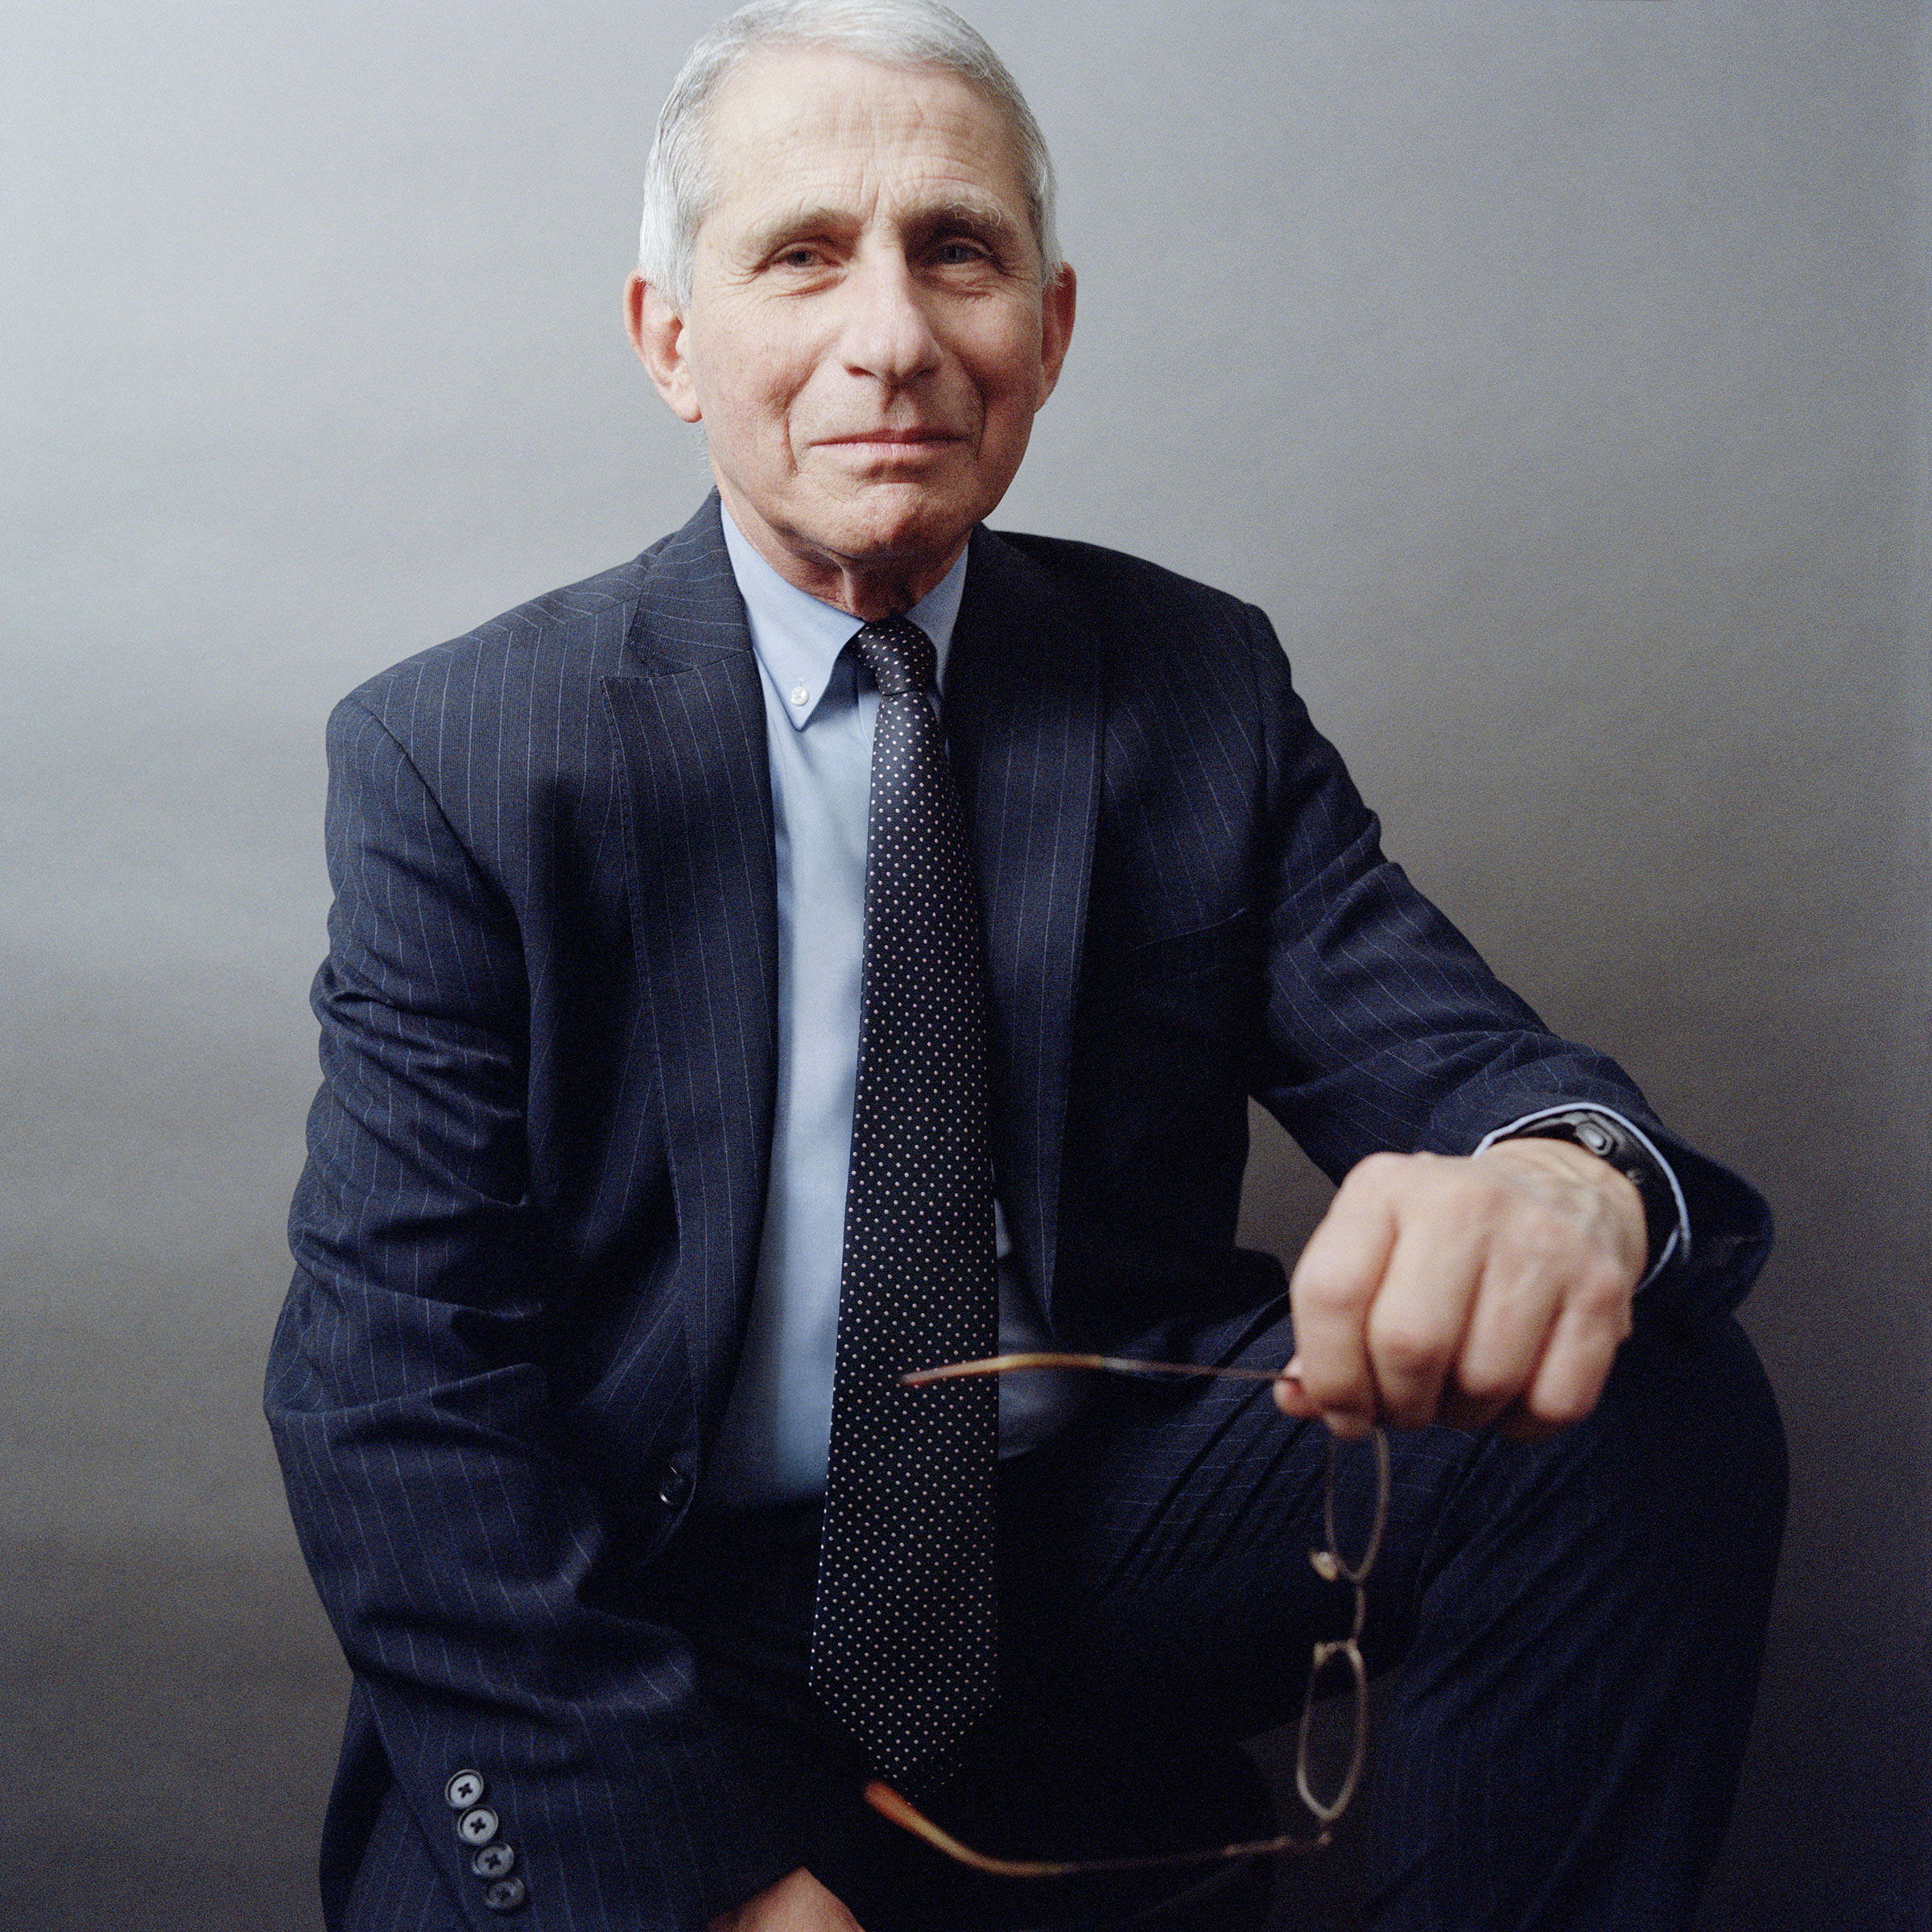 Dr. Anthony Fauci, photographed in Bethesda,Md., onDec.4, 2020.